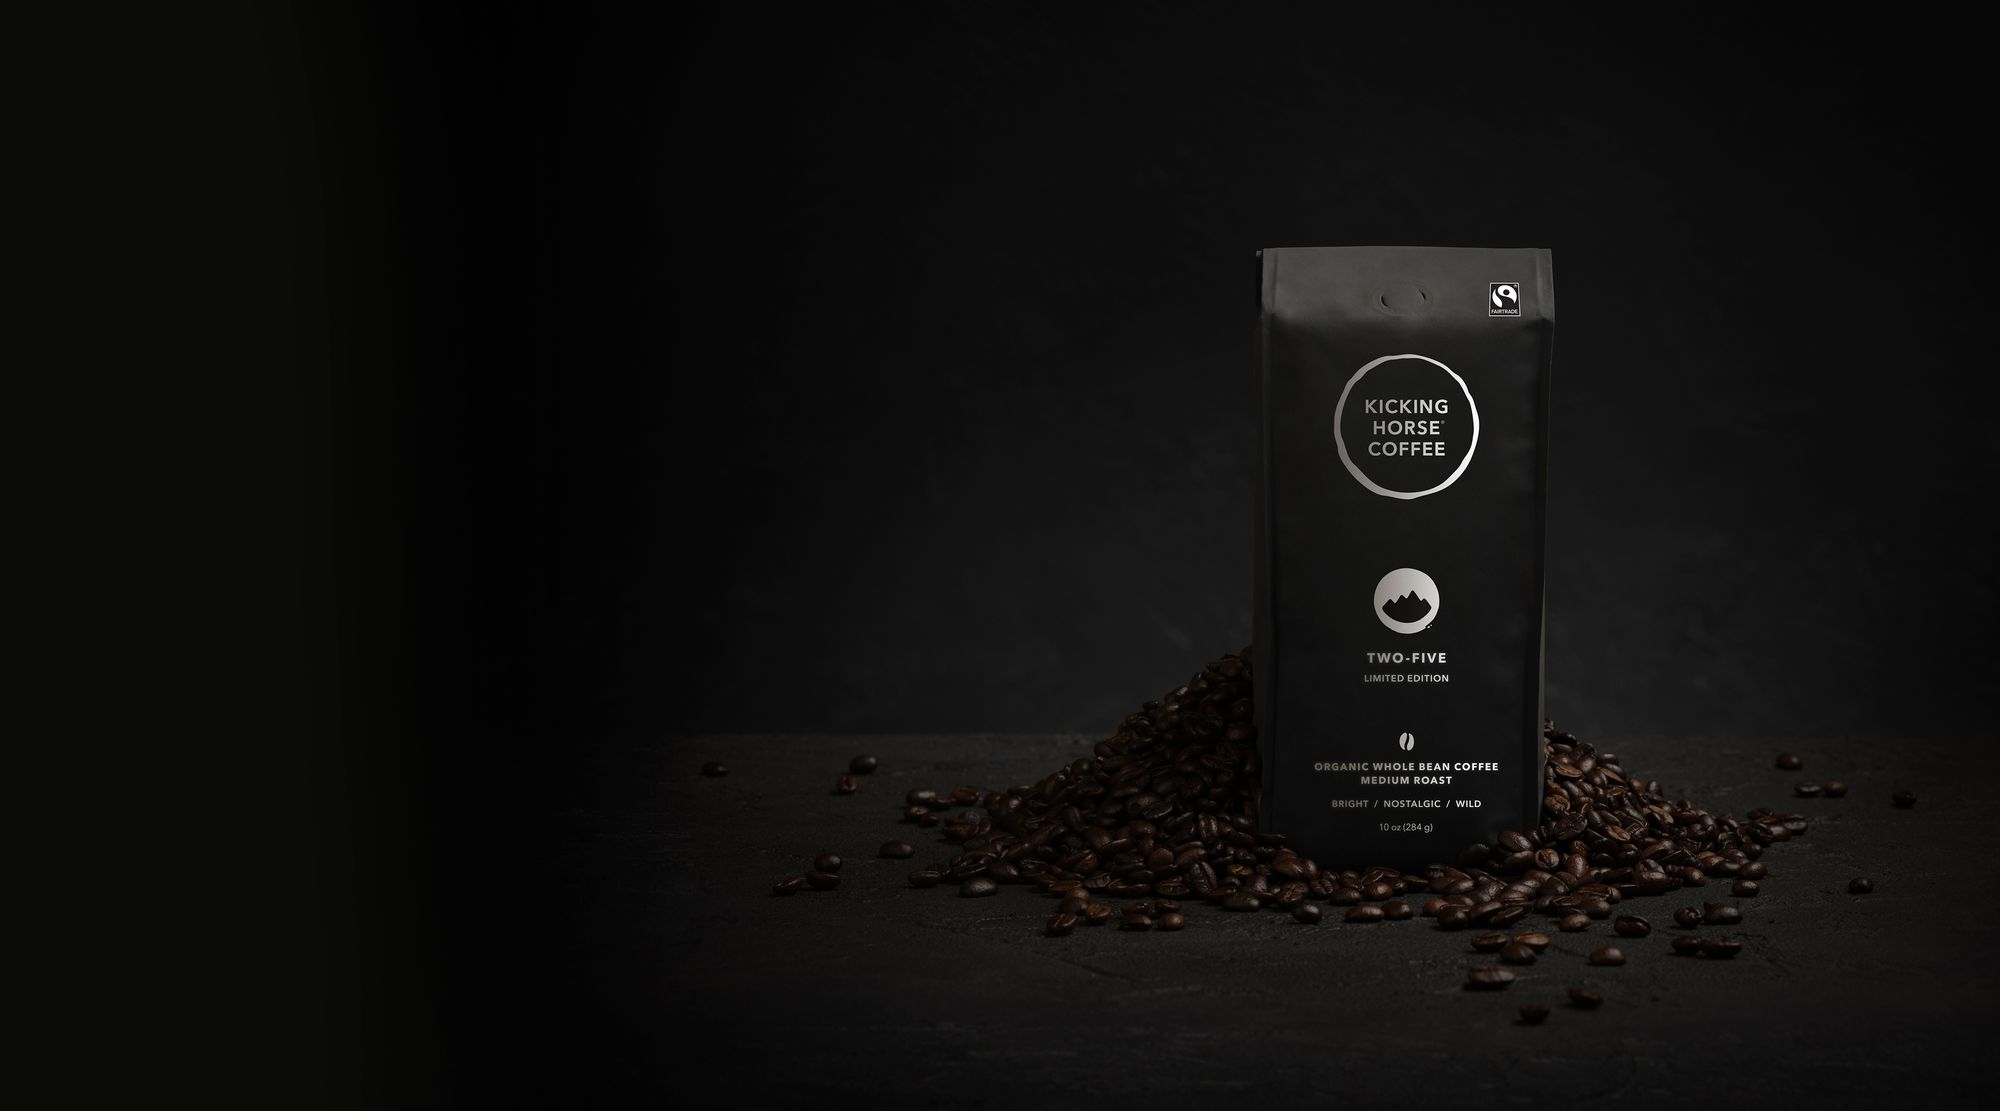 Bag of Two Five Limited Edition Coffee Beans